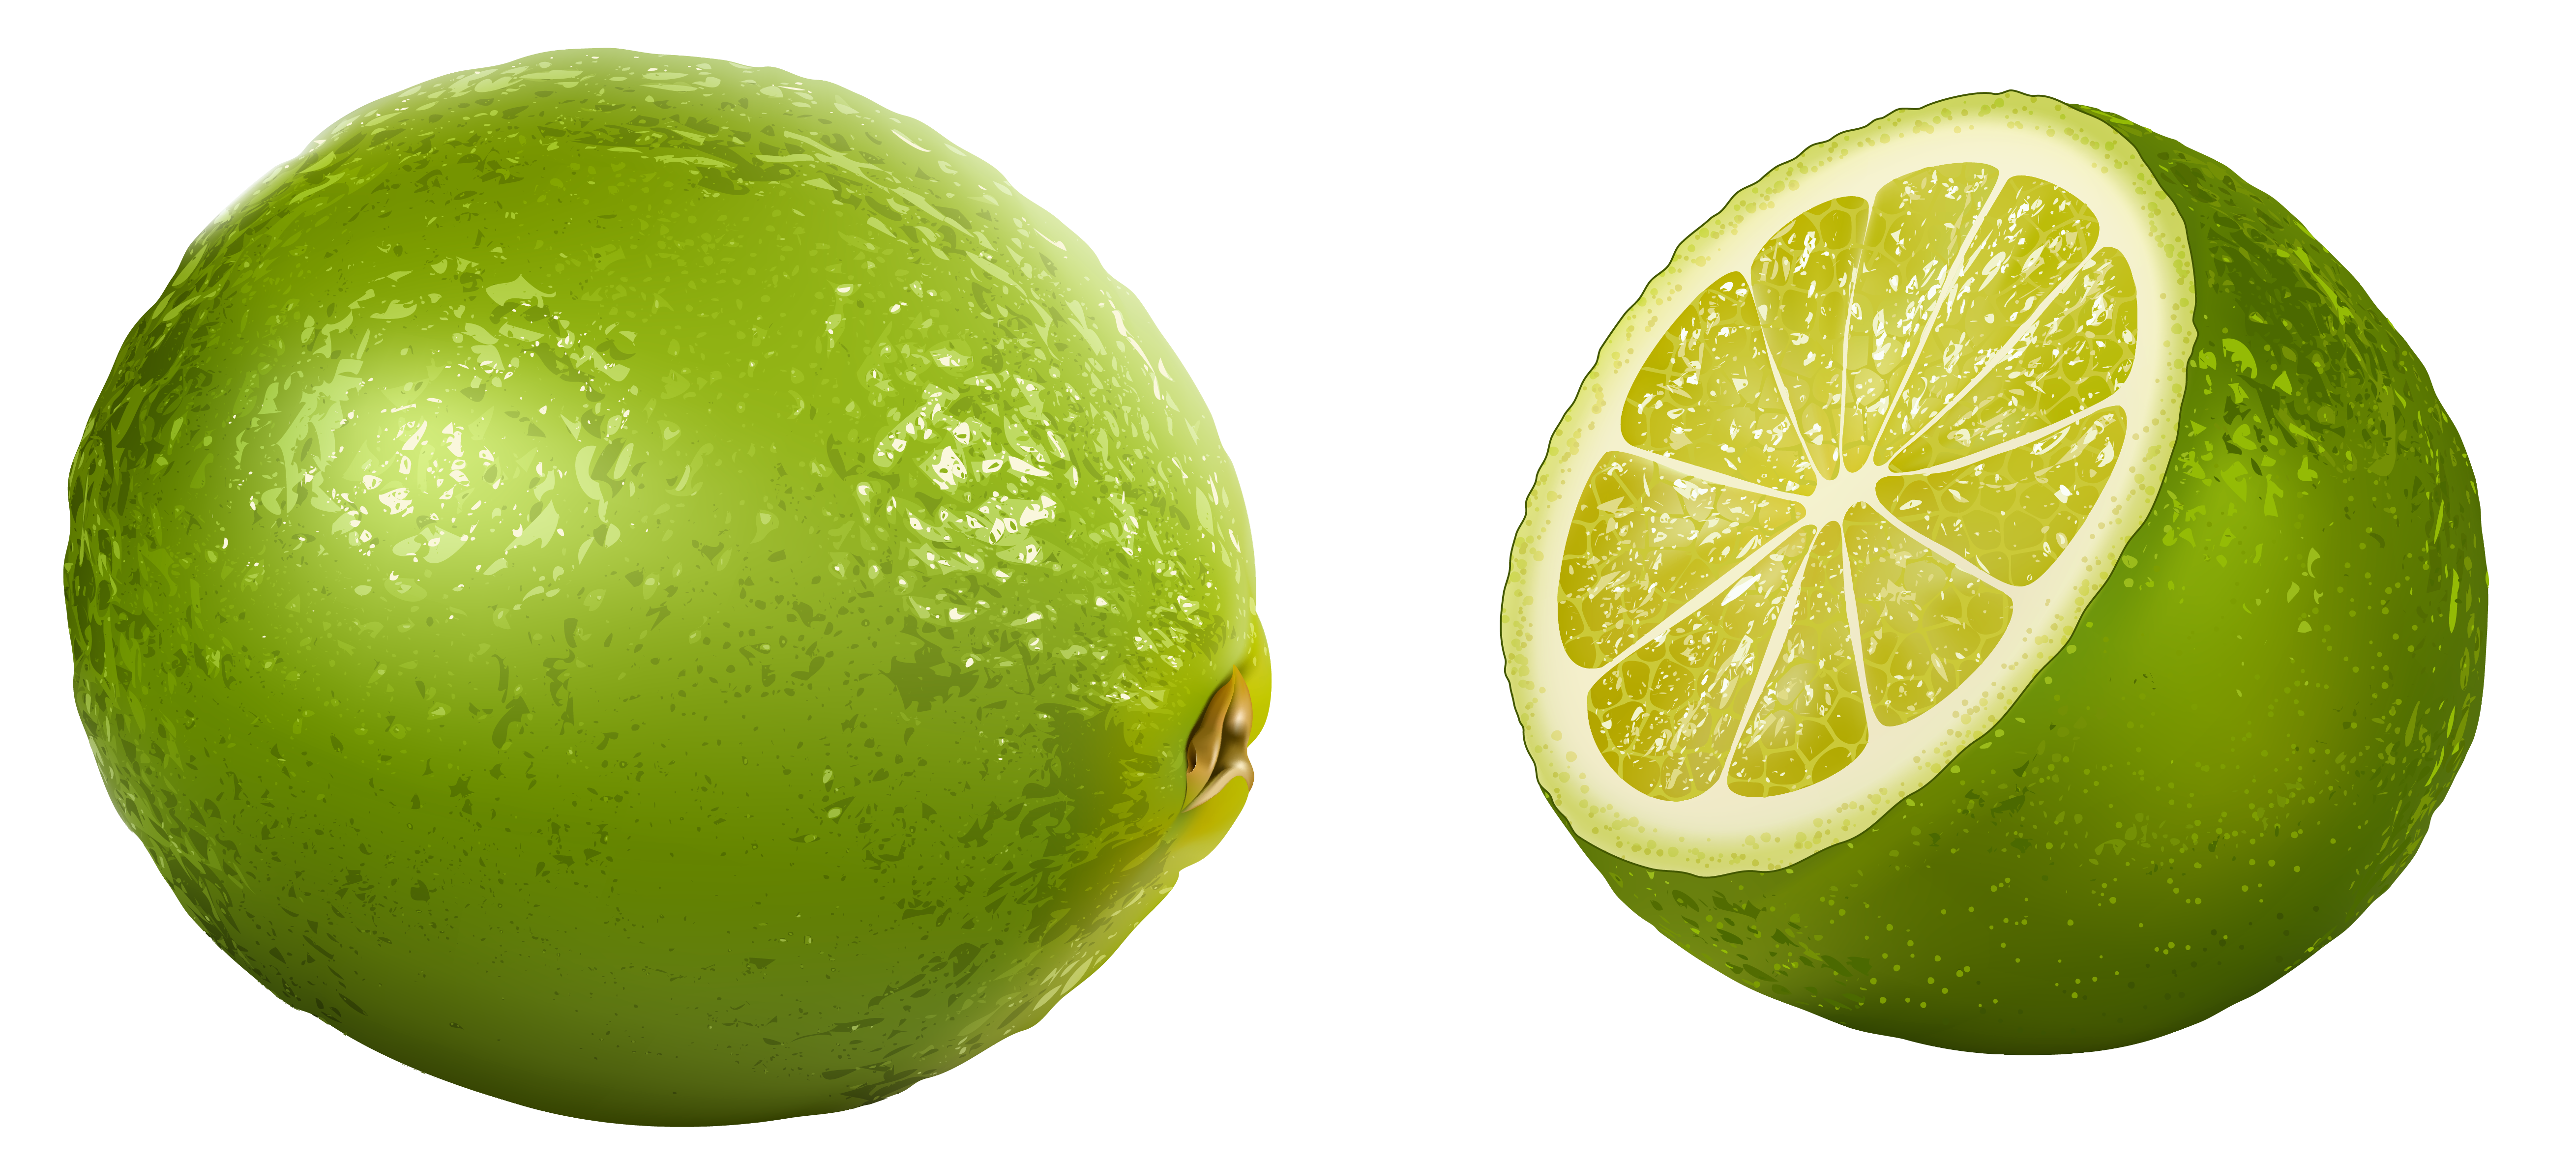 Lime clipart Png?m=1399672800 Clip Clipart Free on